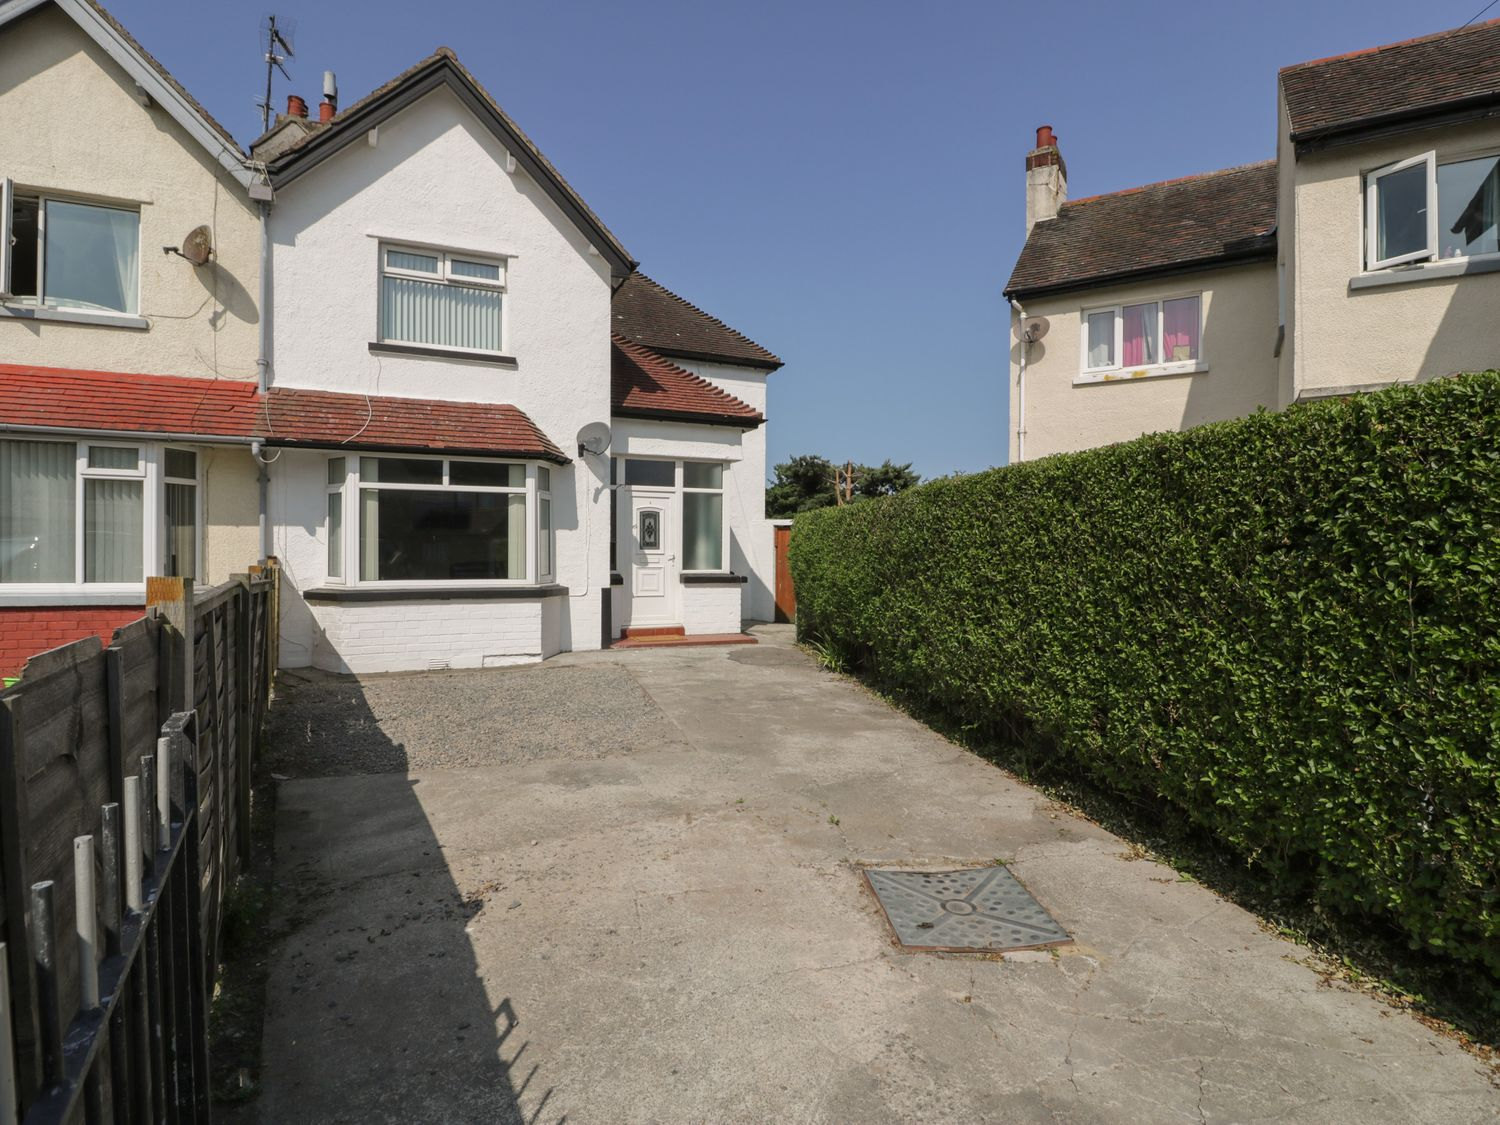 4 Belvedere Place - North Wales - 1064205 - photo 1